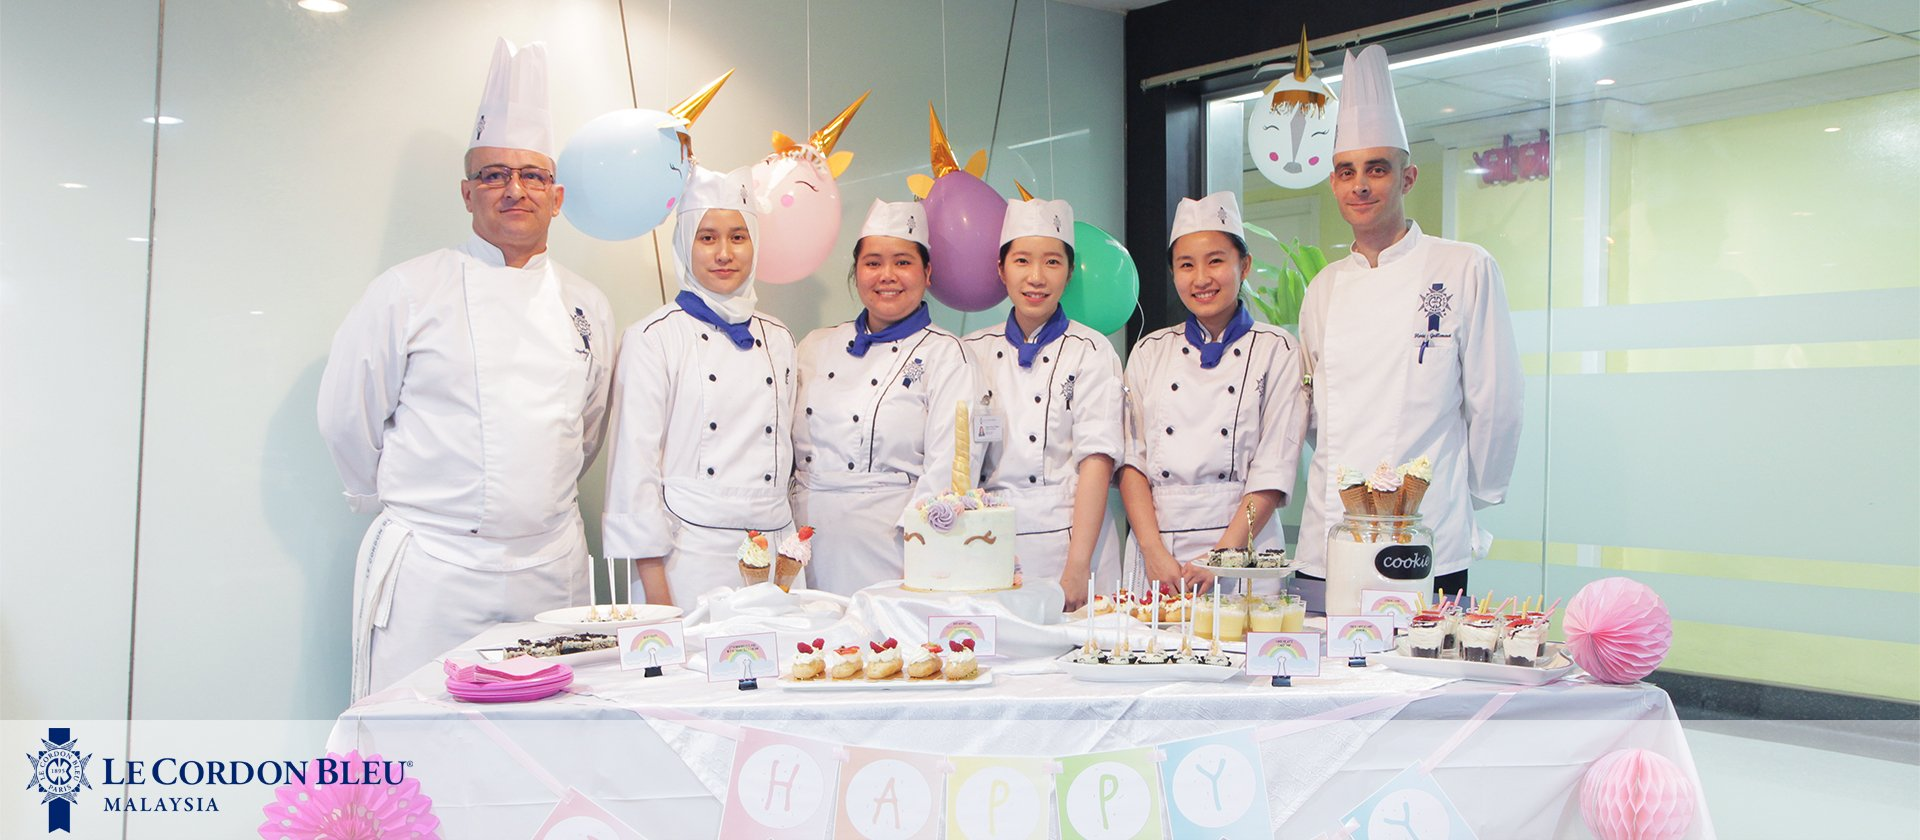 Diploma in Pastry Arts graduating students for the term had the opportunity to showcase their work to 30 members of the Ikebana Society KL Chapter.